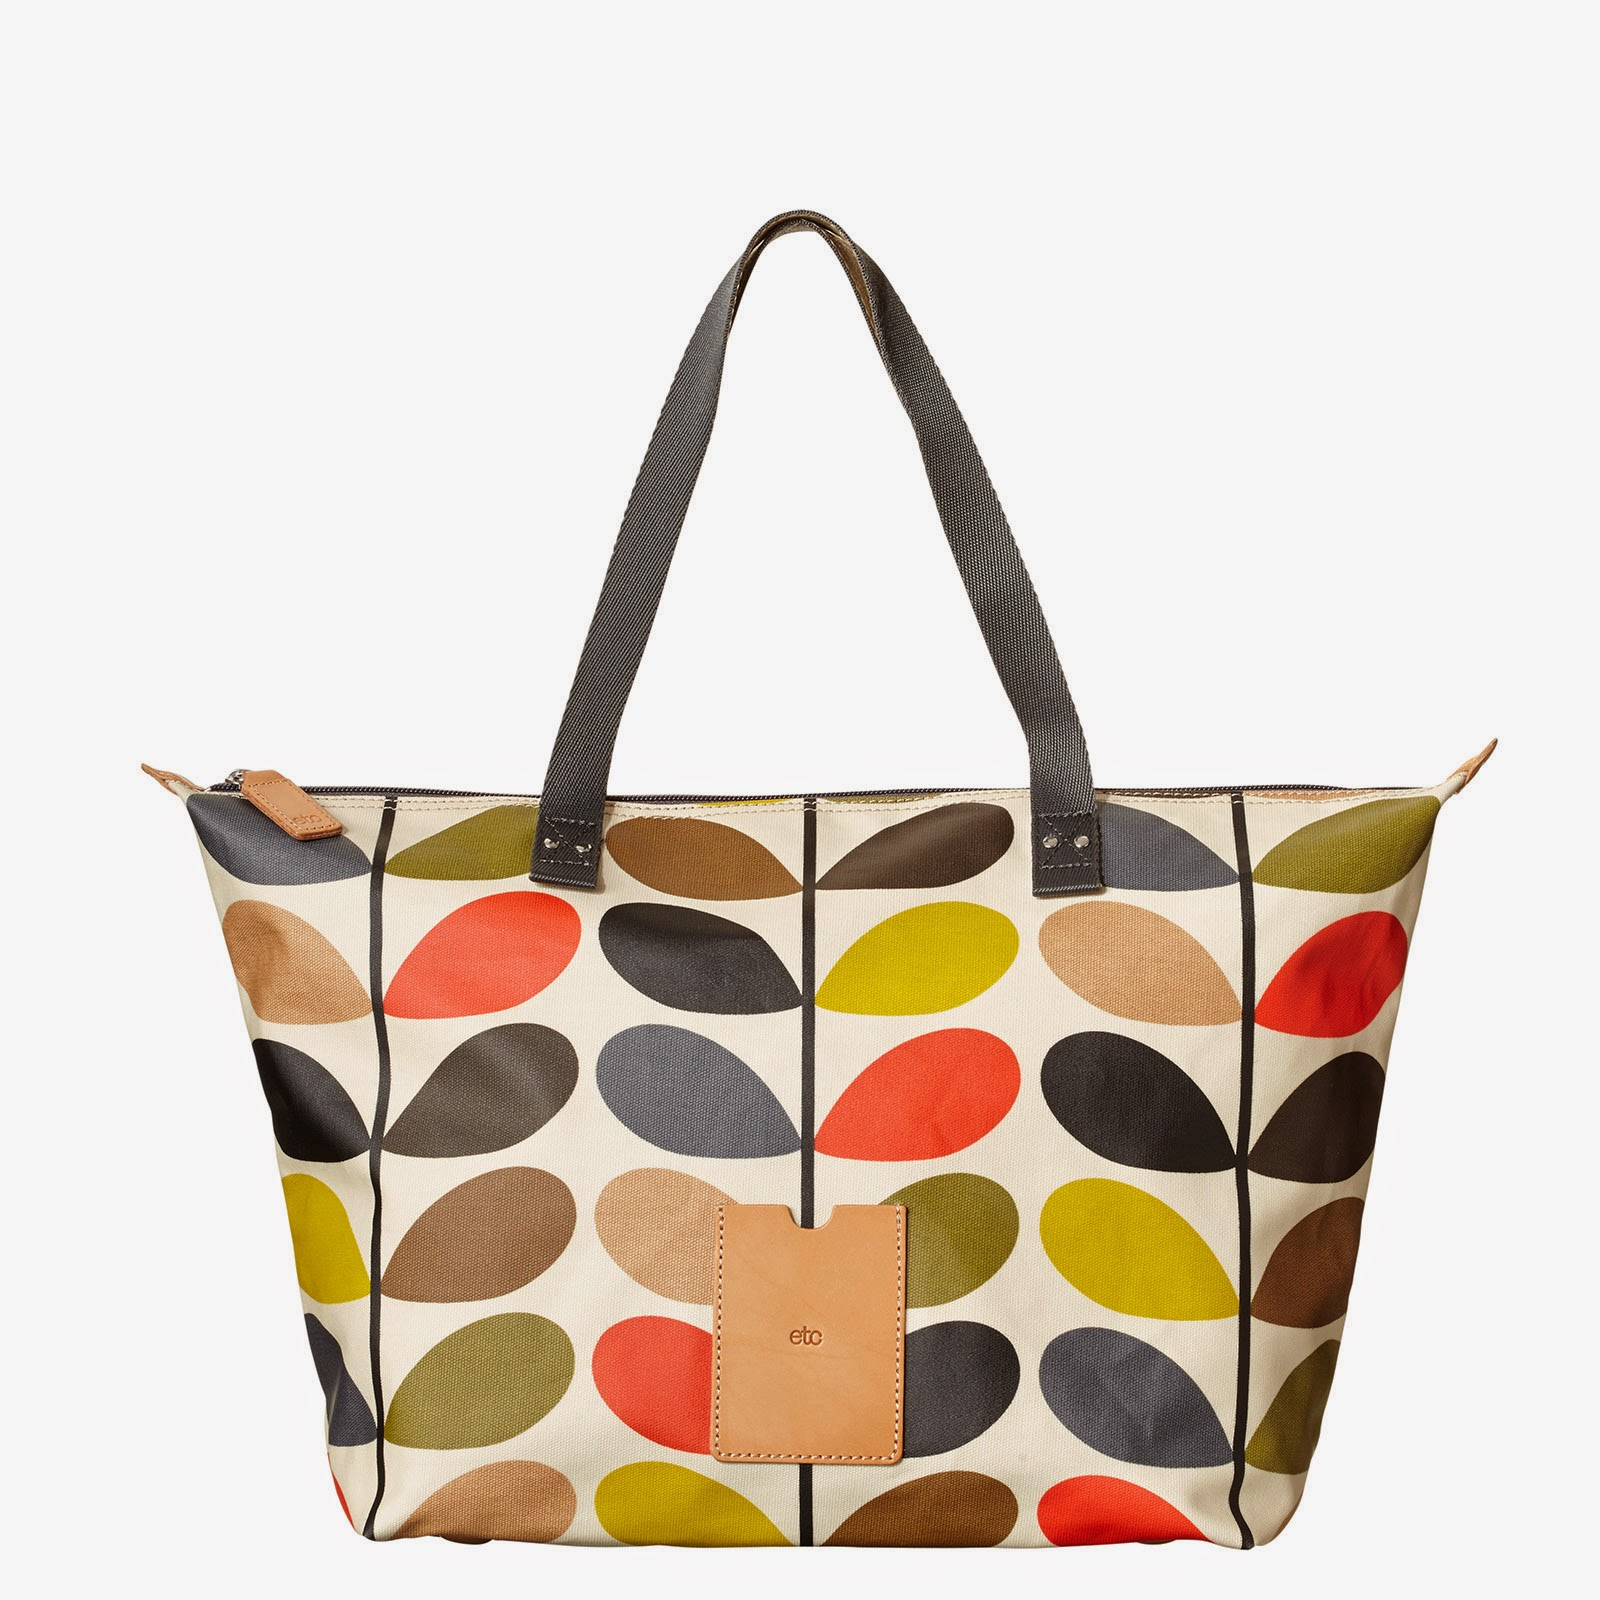 702851d462aa I Love Orla Kiely  Orla Kiely Classic Multi Stem Bags and Accessories  Coming Soon!